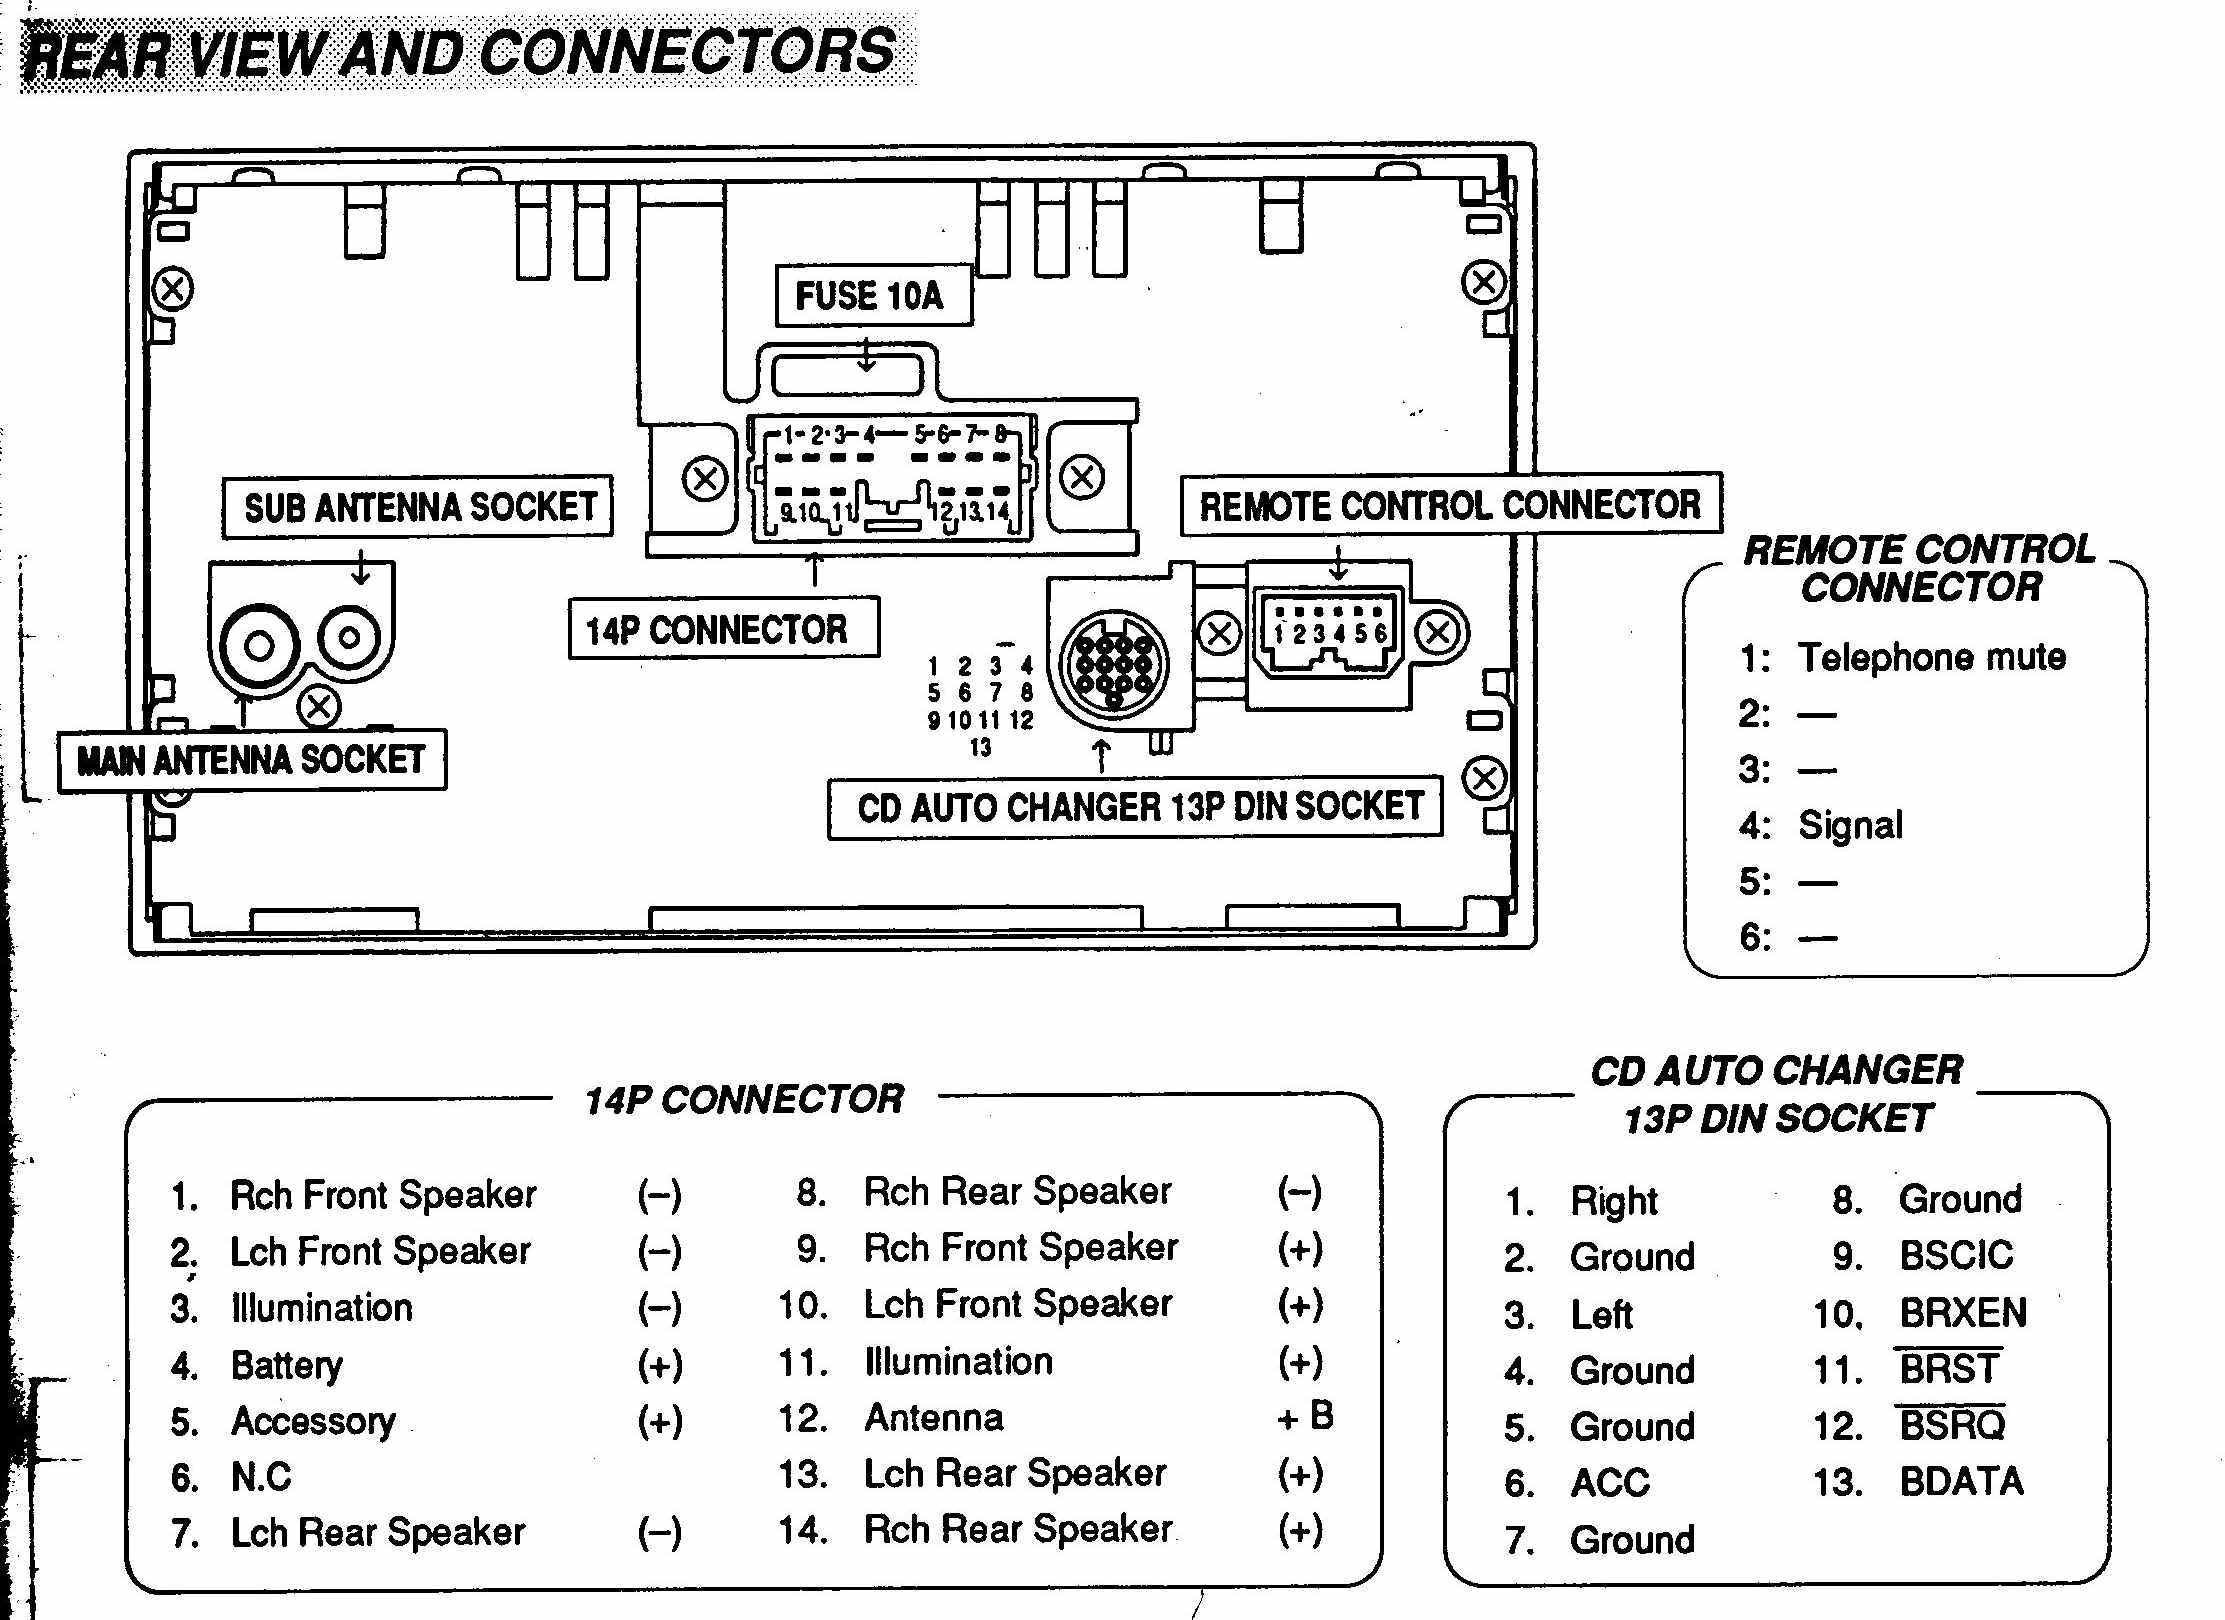 Wiring Diagram Car Audio Nakamichi Car Stereo Wiring Diagram Fresh sony Audio Beautiful Afif Of Wiring Diagram Car Audio